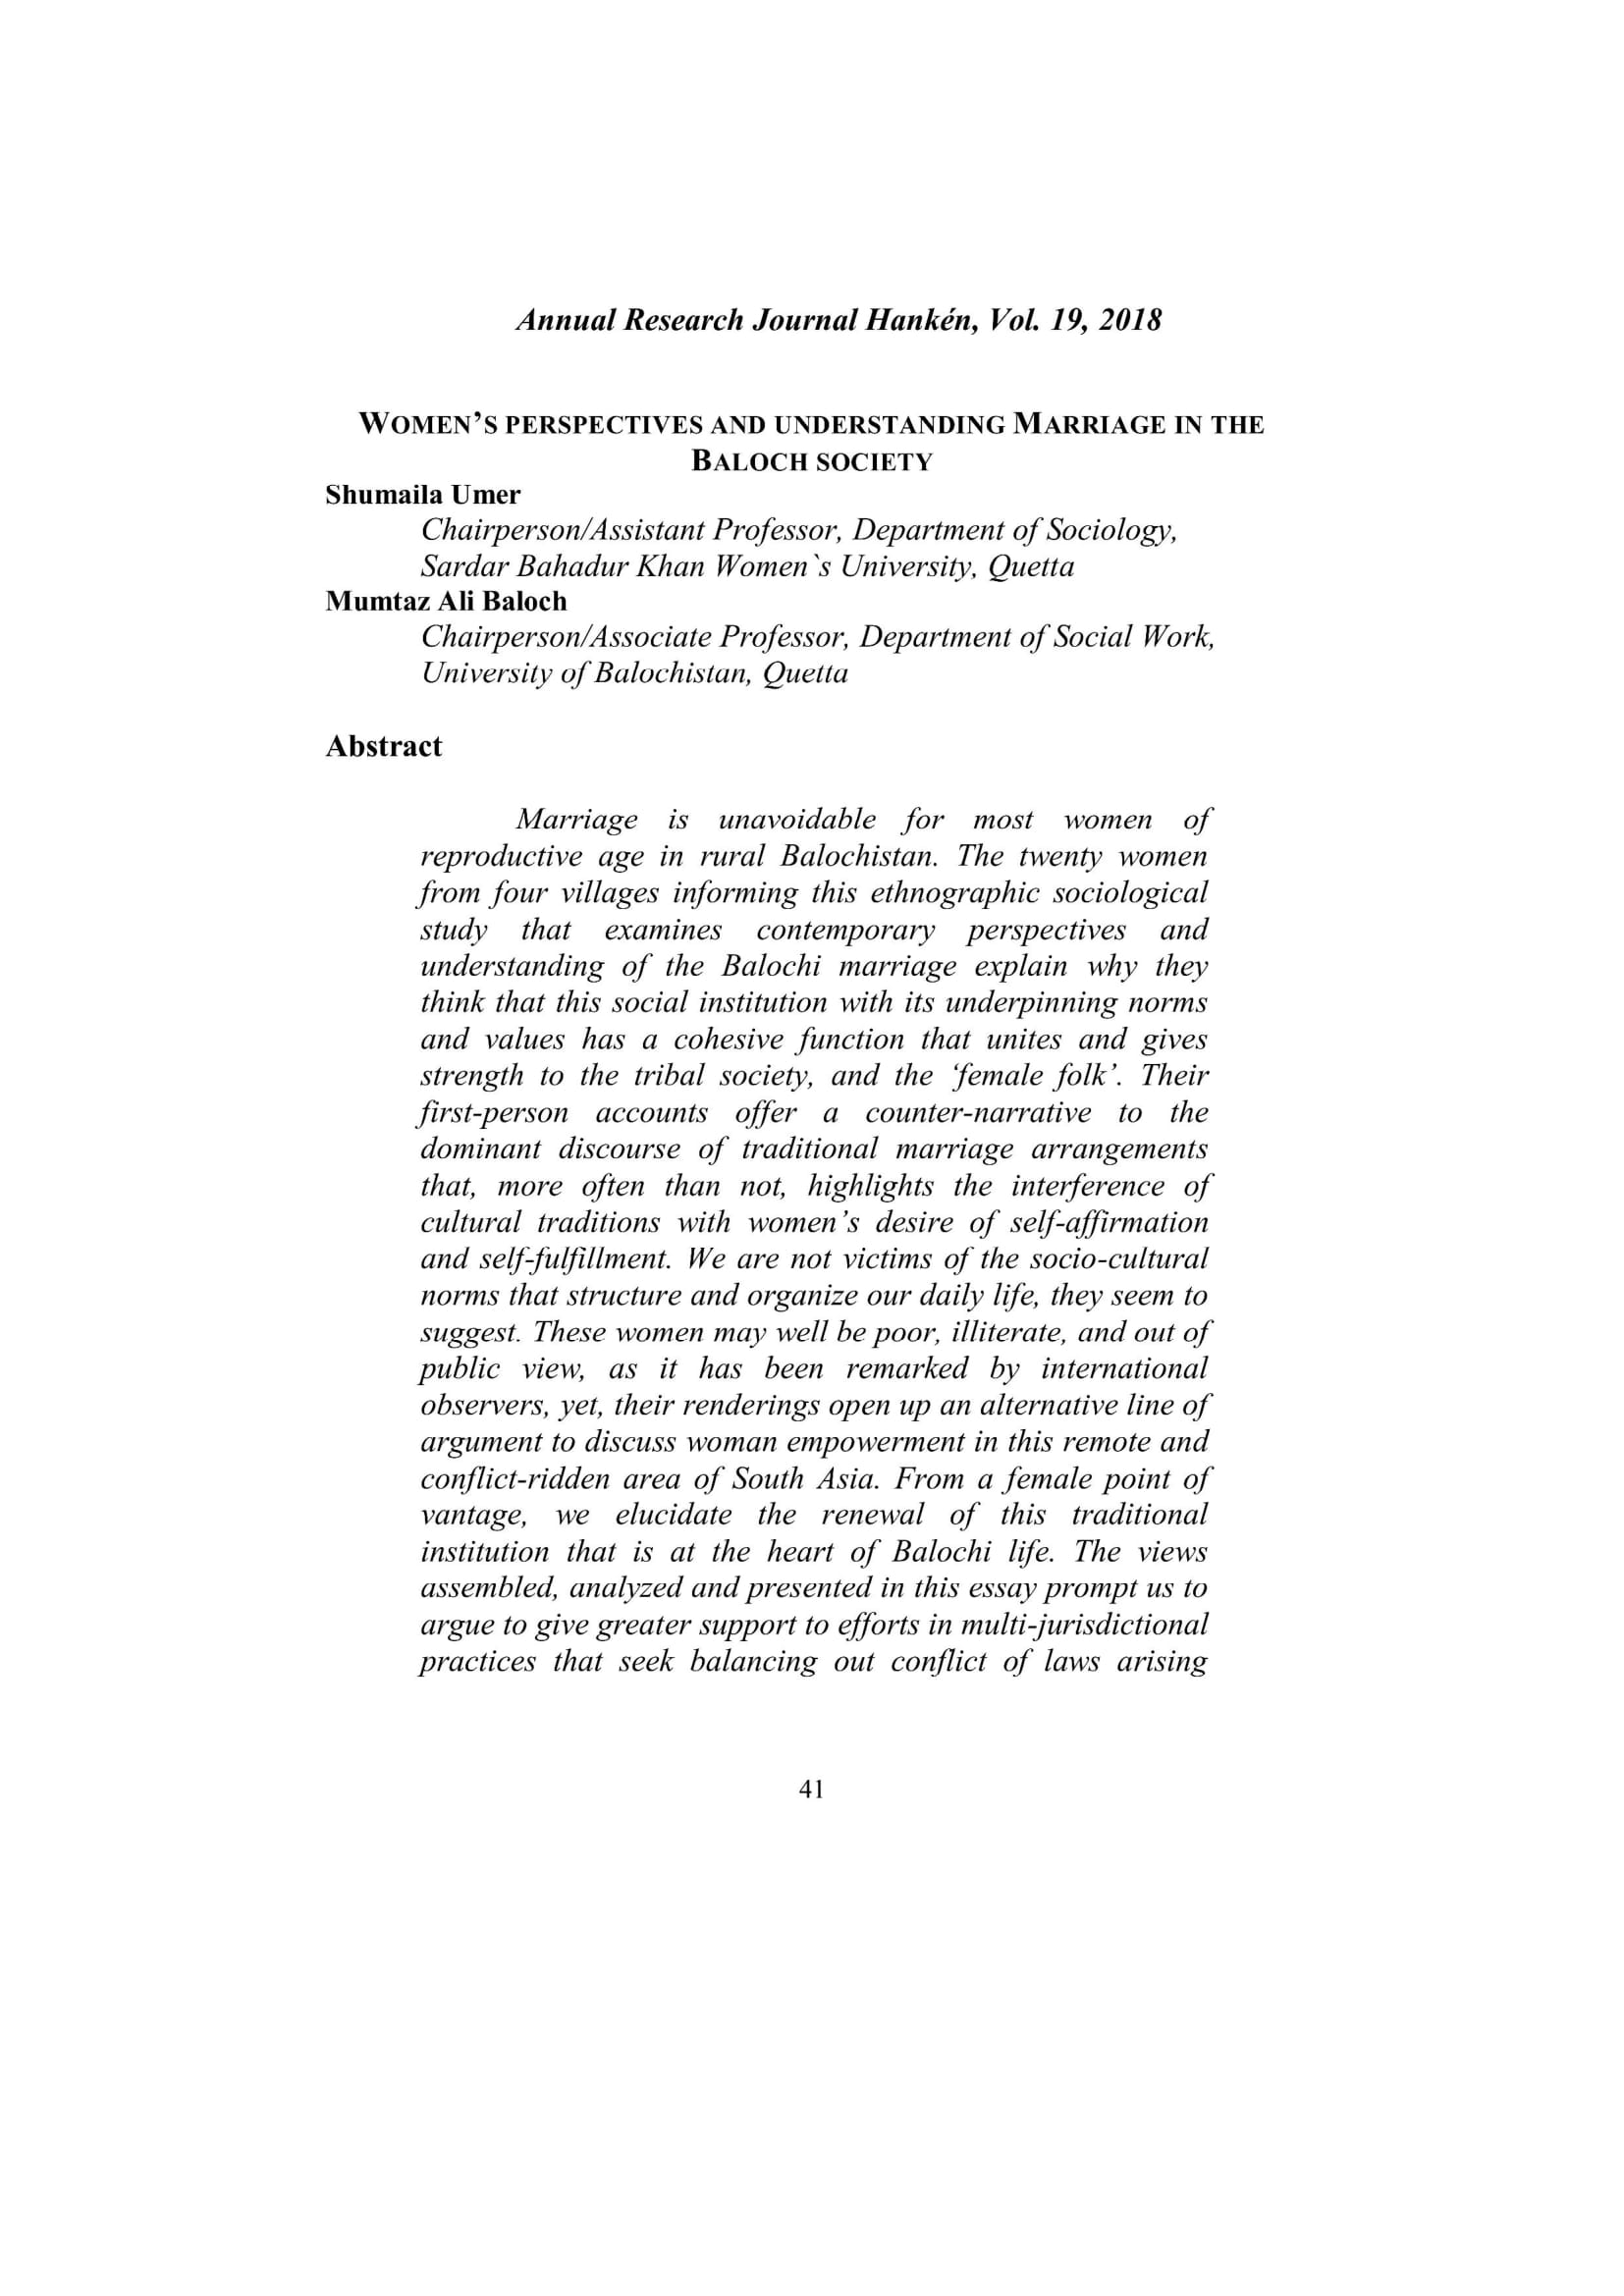 WOMEN'S PERSPECTIVES AND UNDERSTANDING MARRIAGE IN THE  BALOCH SOCIETY